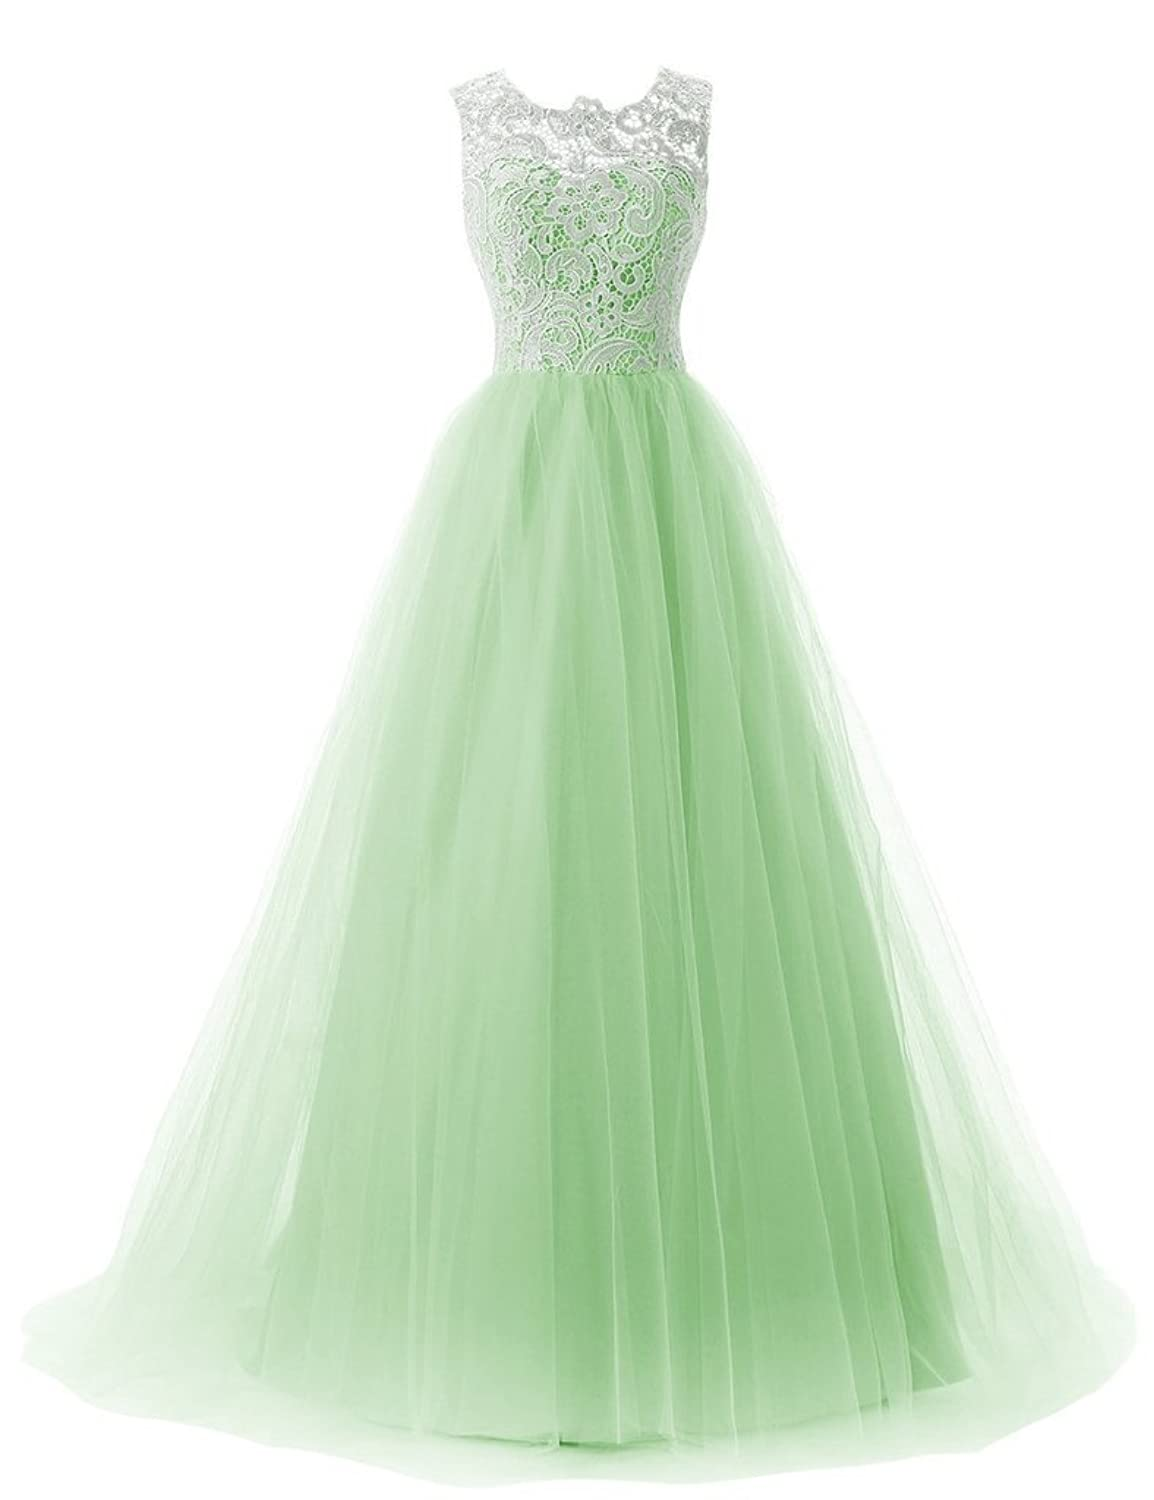 Amazon.com: JoyVany Tulle Party Prom Dresses 2018 Lace Formal ...